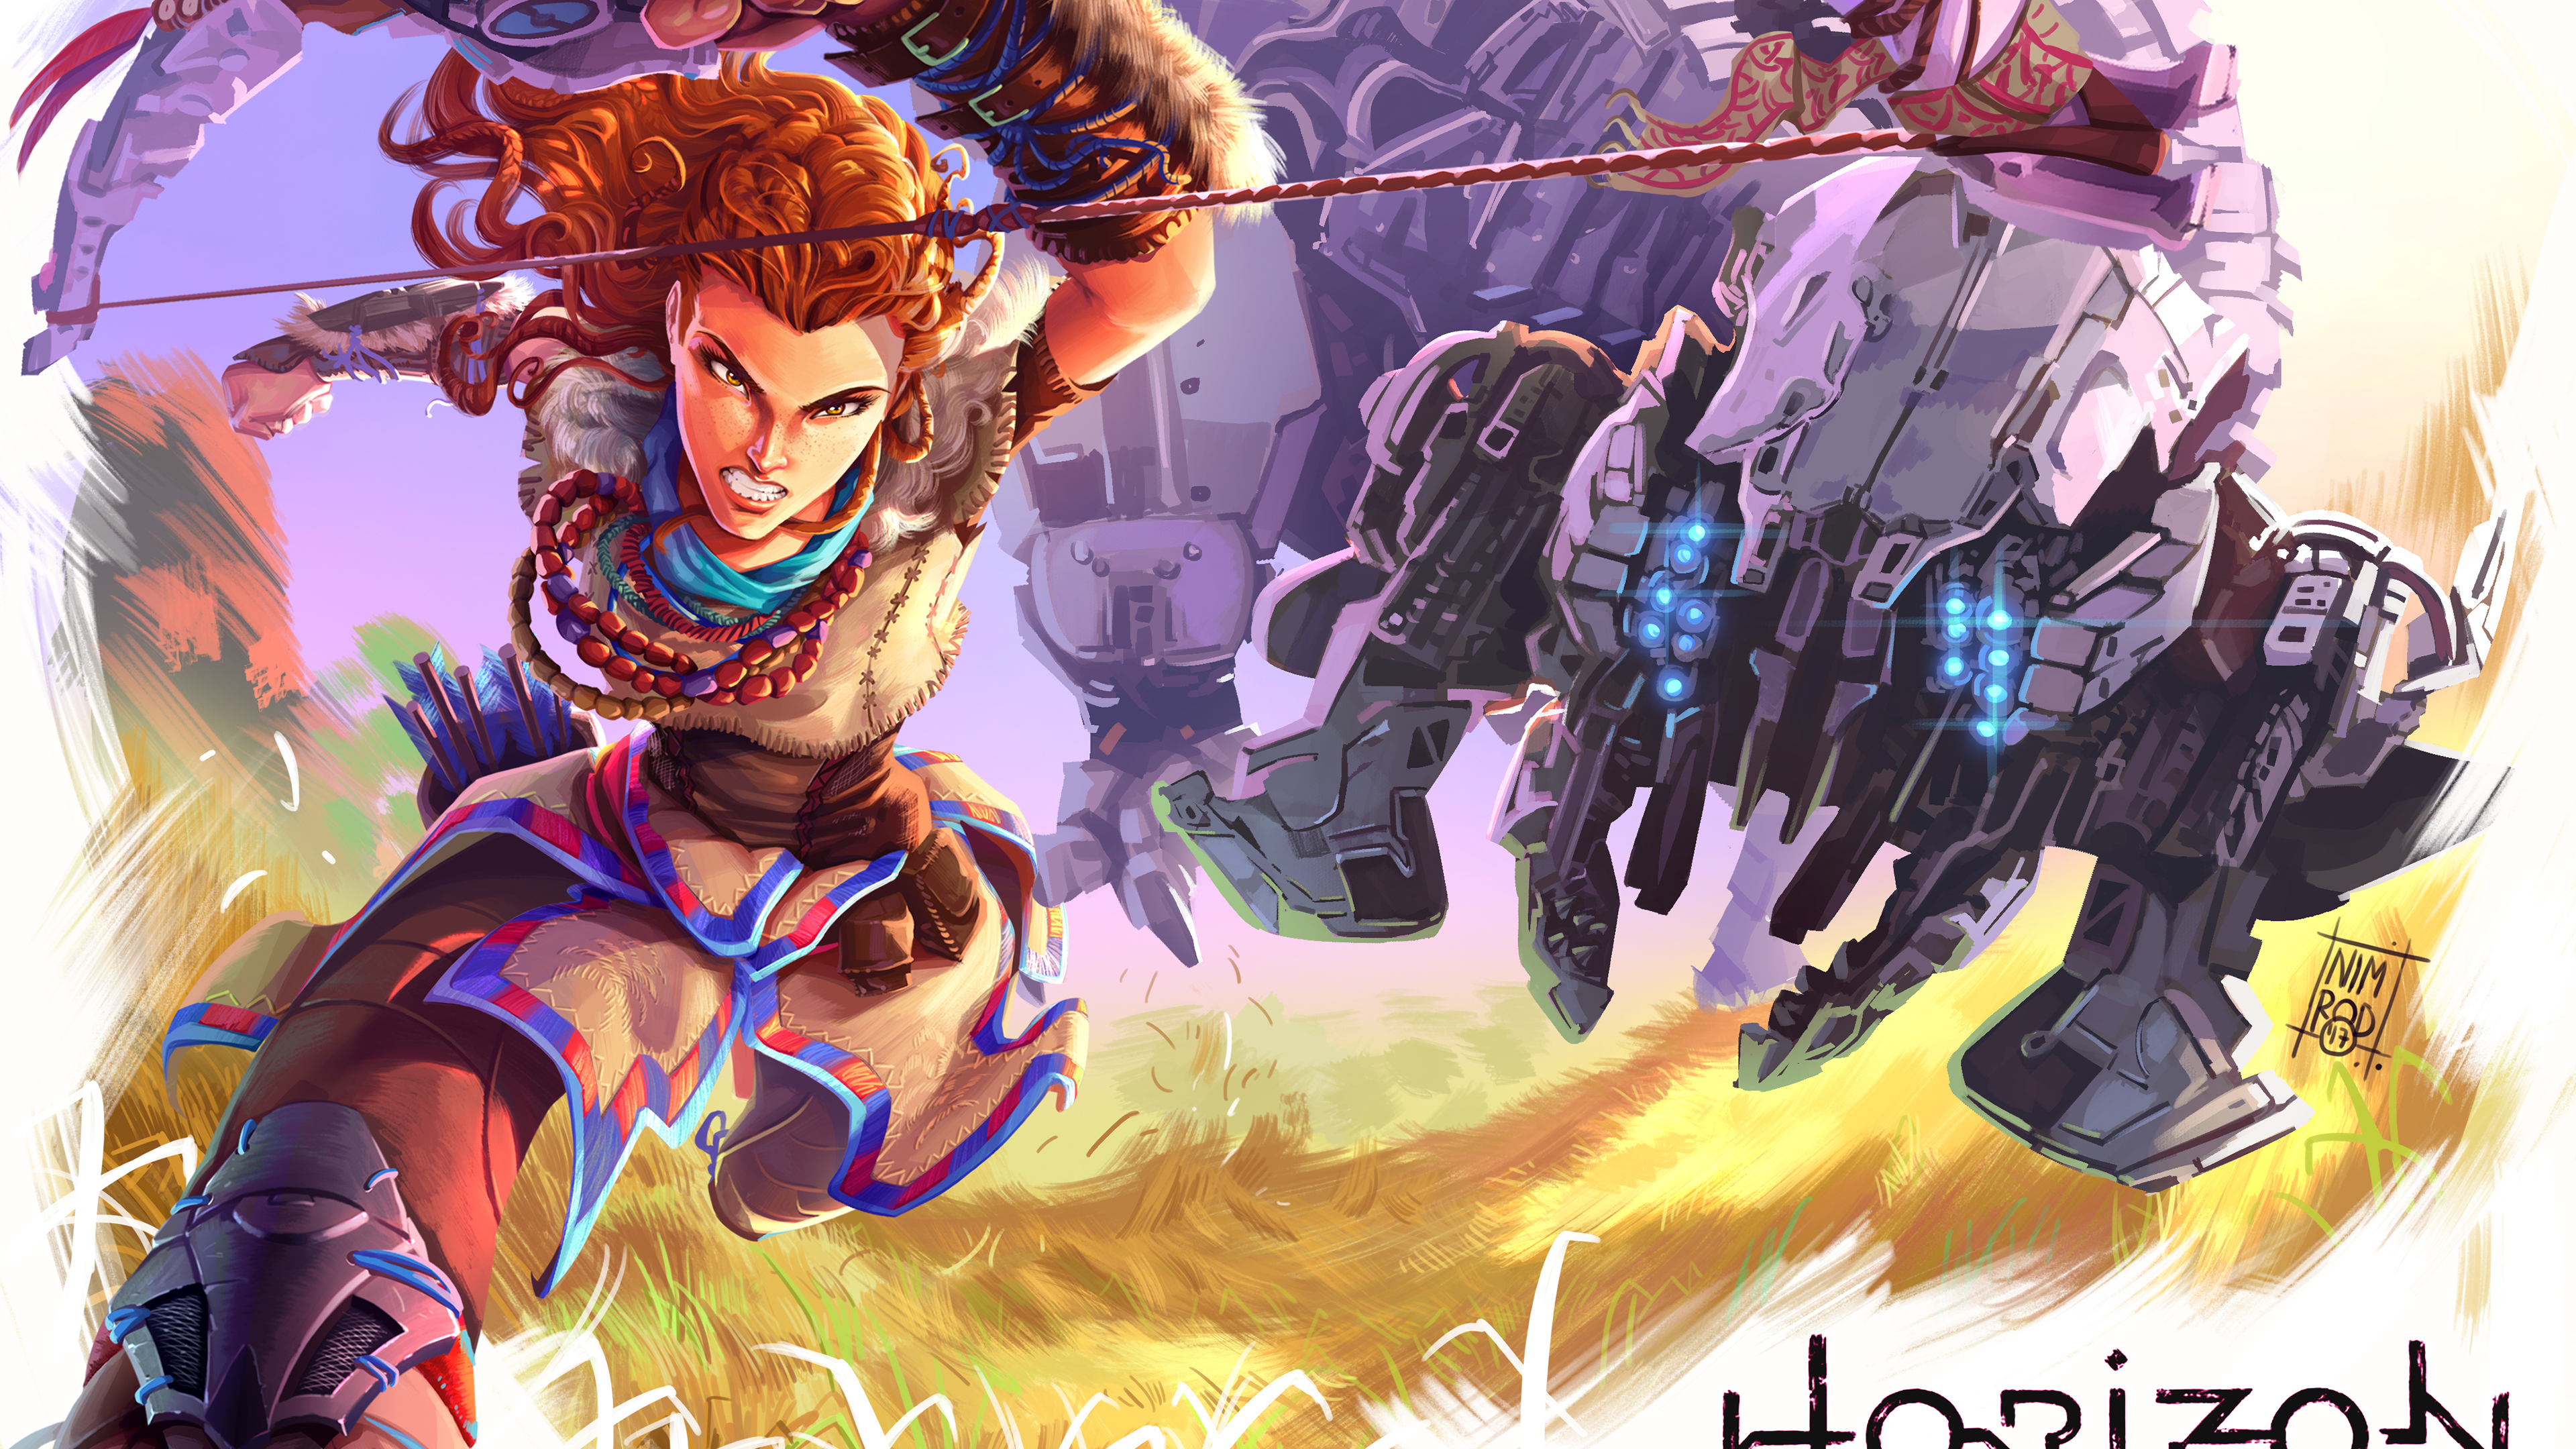 horizon zero dawn 4k fanart 1540982737 - Horizon Zero Dawn 4k Fanart - xbox games wallpapers, ps games wallpapers, pc games wallpapers, horizon zero dawn wallpapers, hd-wallpapers, games wallpapers, digital art wallpapers, behance wallpapers, artwork wallpapers, artist wallpapers, 4k-wallpapers, 2018 games wallpapers